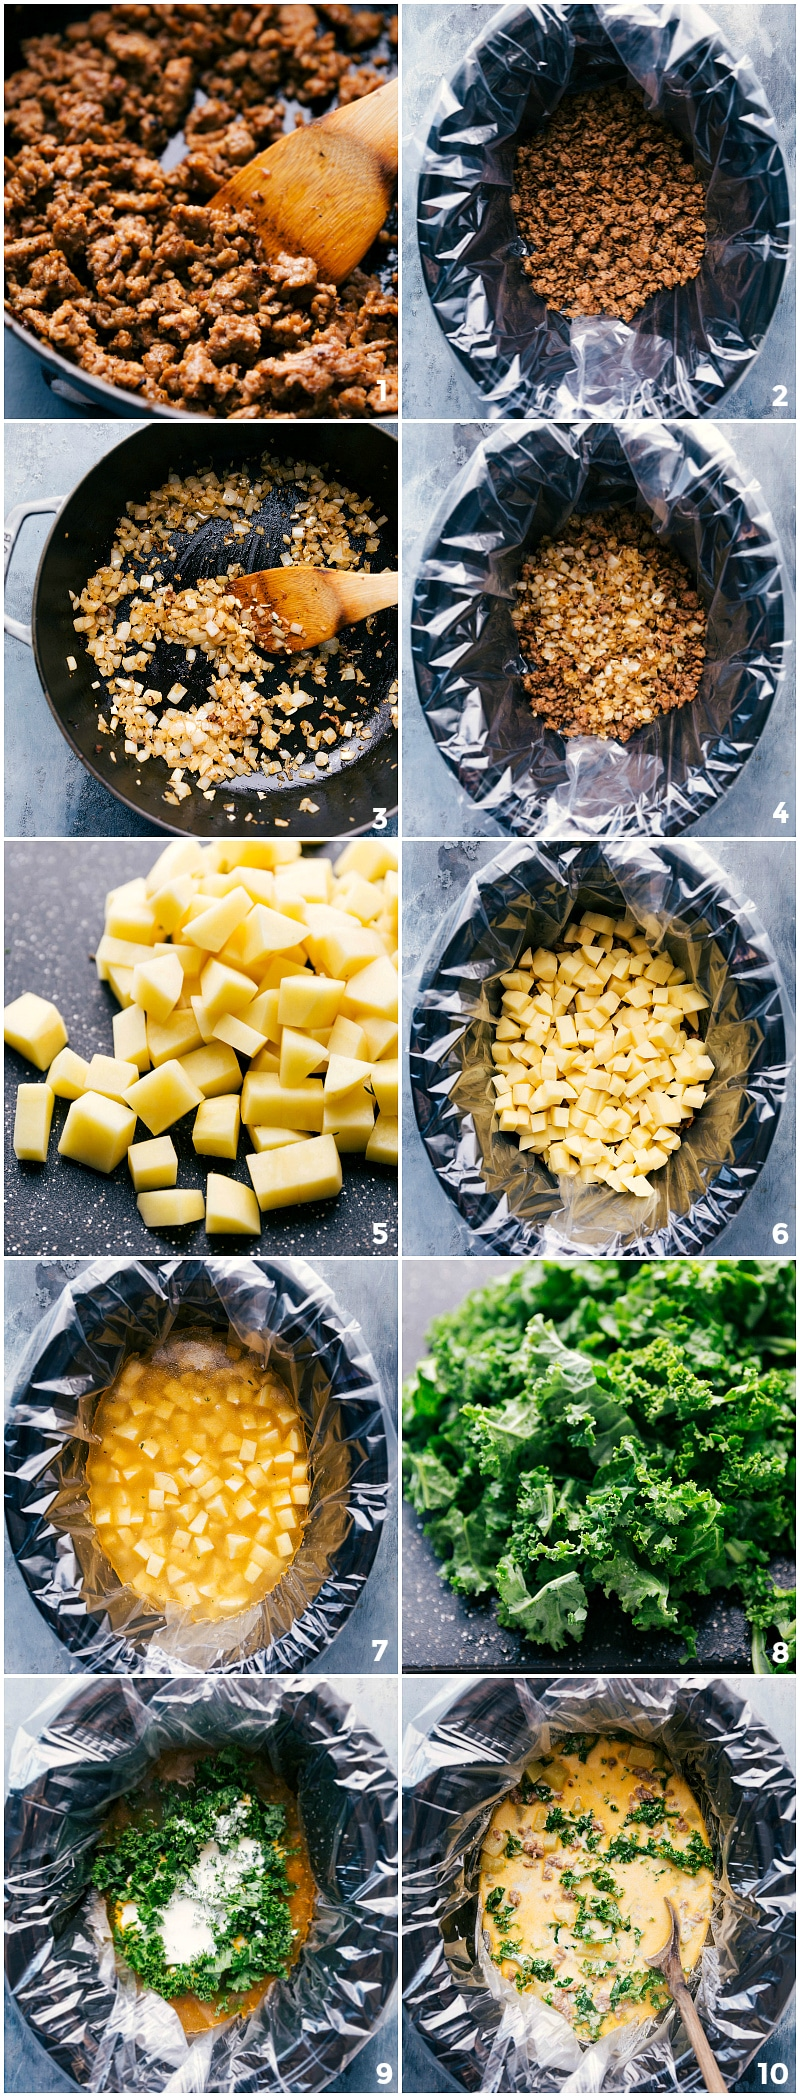 Process shots of the base of this zuppa toscana soup being made